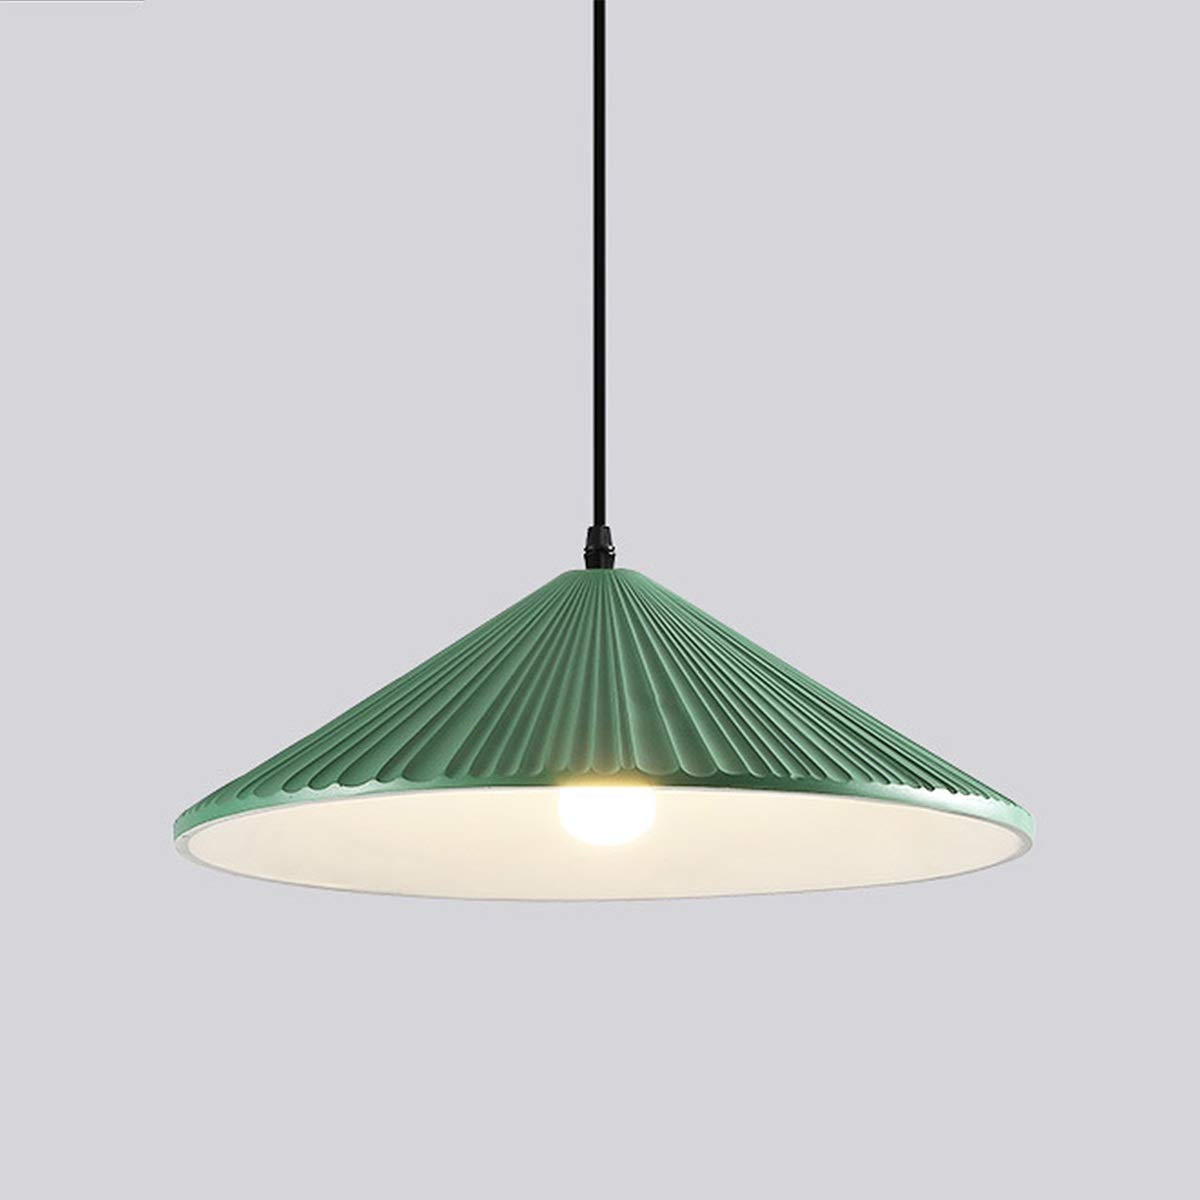 NANGE Macaron Style Chandelier,Resin Metal Suction Cups Pendant Light,Modern Minimalist Nordic Restaurant Hanging Lamps, E27,110-220V(Without Light Source) (Color : Green, Size : AC 110V) by NANGE (Image #1)